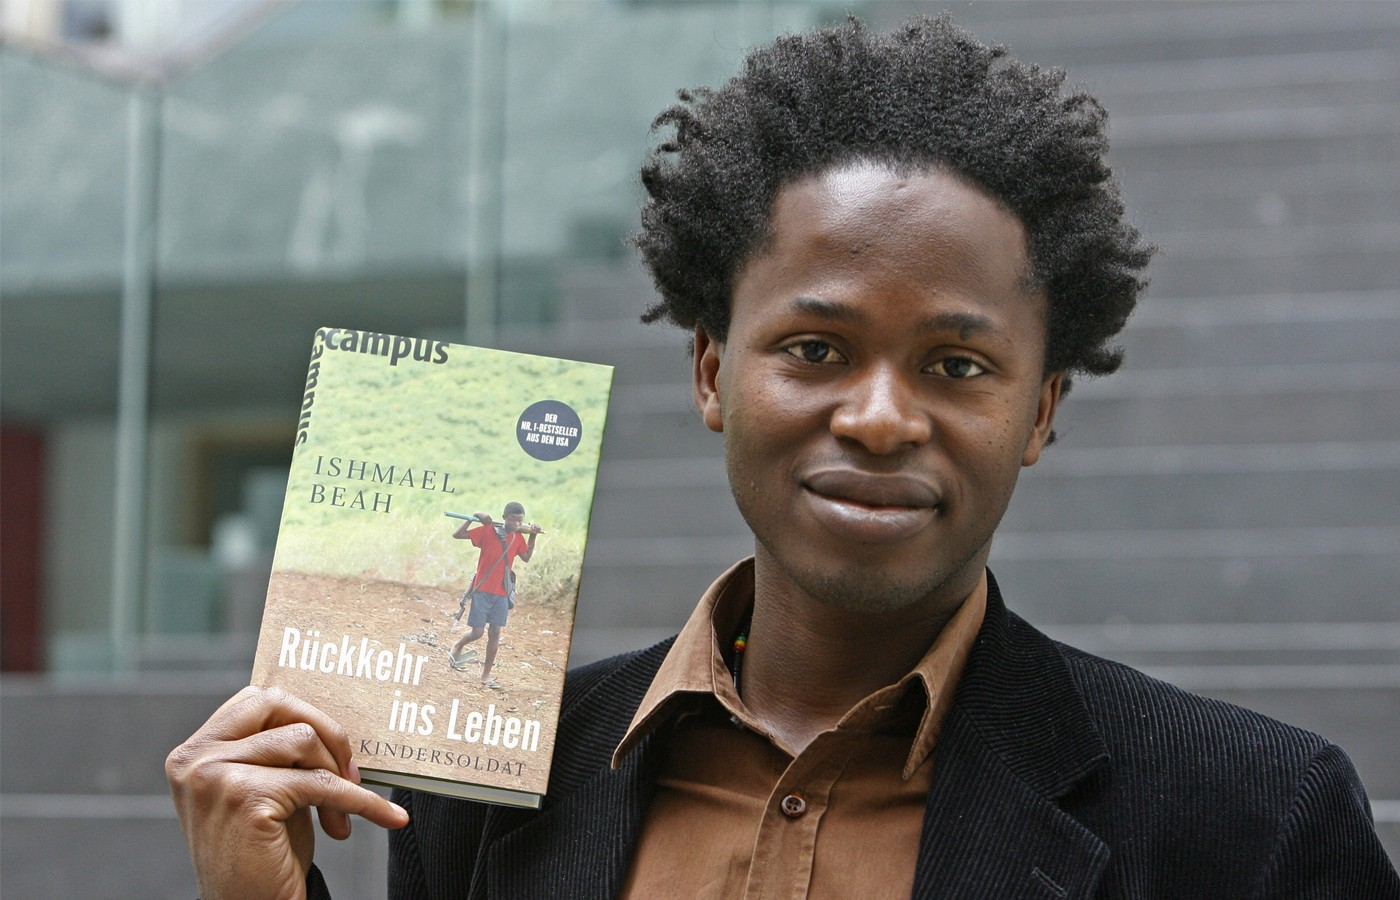 thesis of ishmael Ishmael beah, a long way gone essay sample conflict can be external or internal creating depth in a character and making a very complex journey ishmael beah the author of a long way gone goes through many trials and conflicts that he has to overcome, creating his identity.